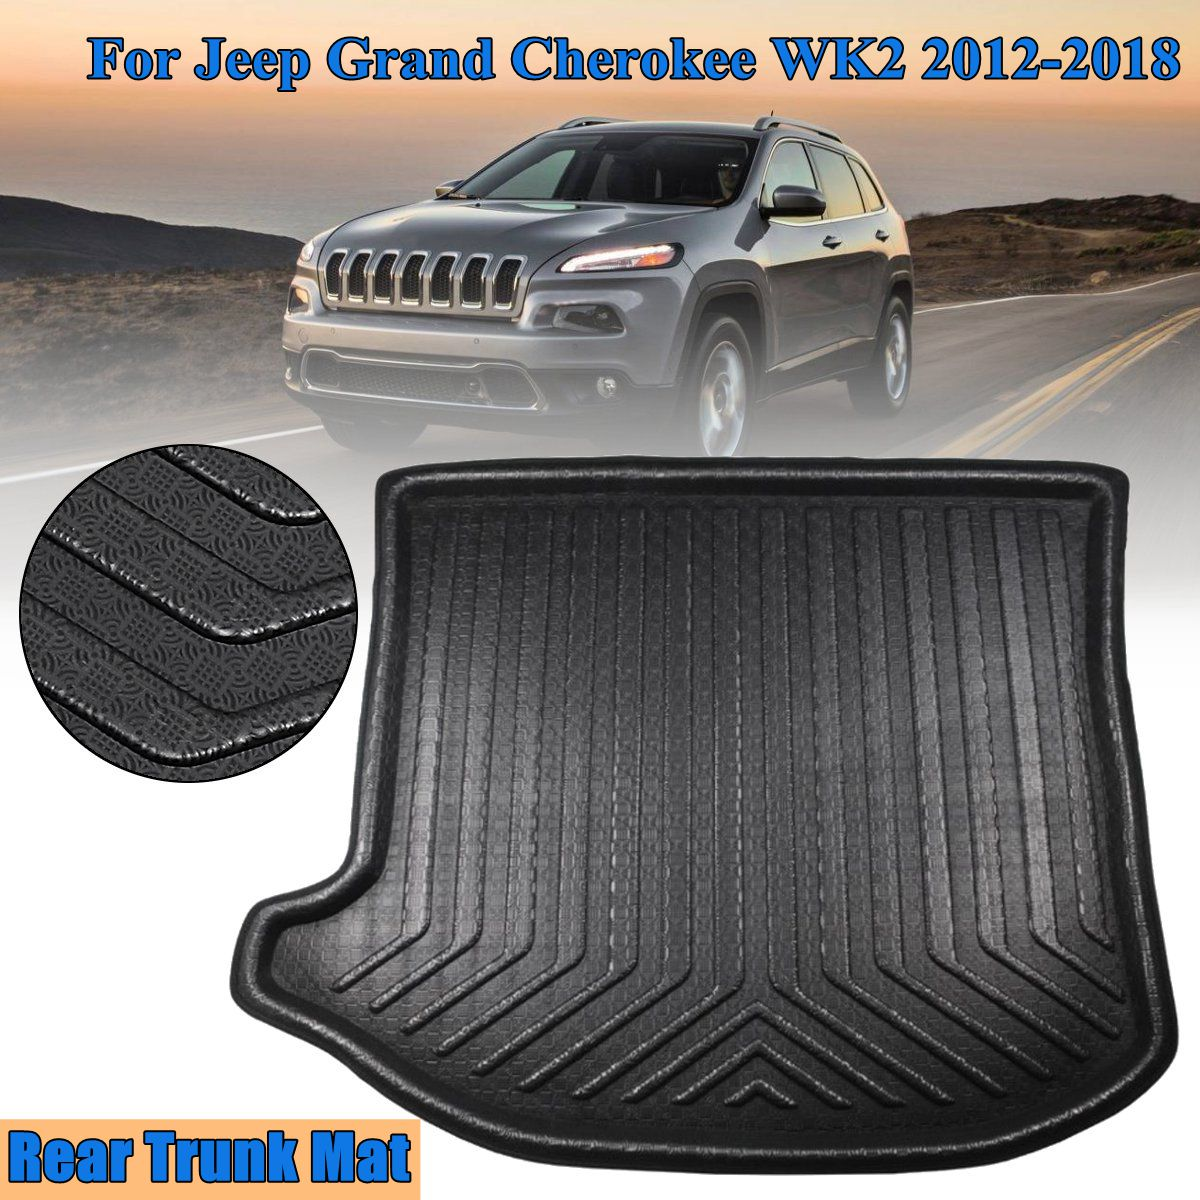 New Tray Liner Cargo Rear Trunk Car styling Interior Accessories Boot Liner Waterproof Mat For Jeep Grand Cherokee WK2 2012-2018 car believe custom car trunk mat for peugeot 5008 508 206 4008 306 307 308 207 cargo liner interior accessories car styling